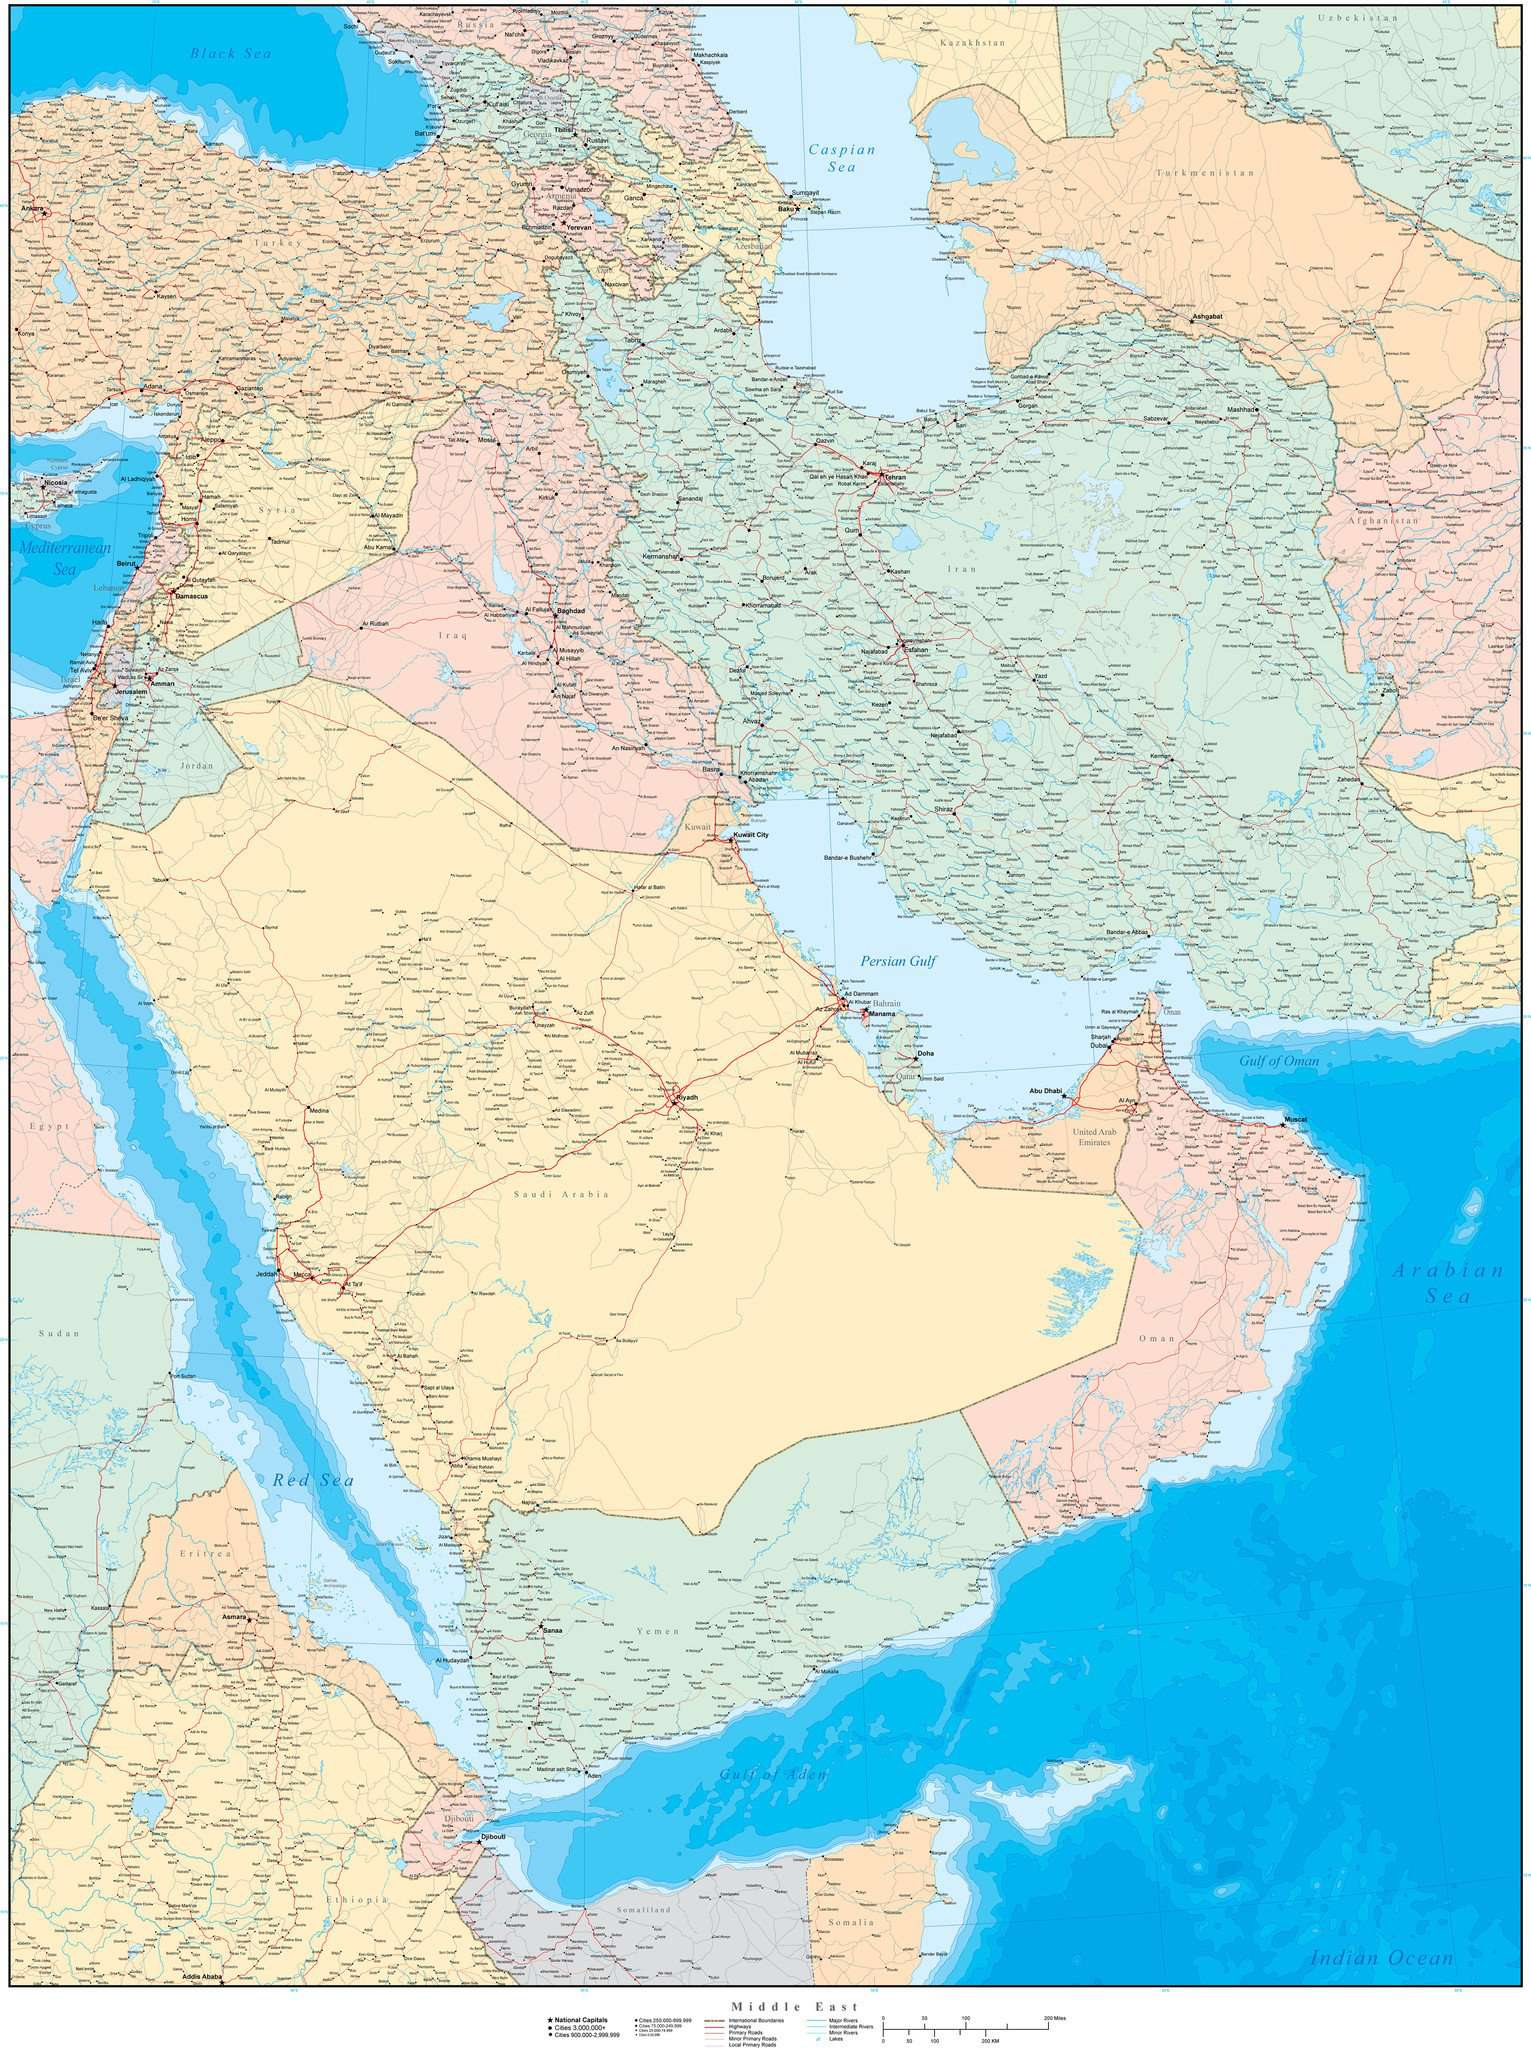 Image of: Digital Poster Size Middle East Contour Map In Illustrator Vector Format